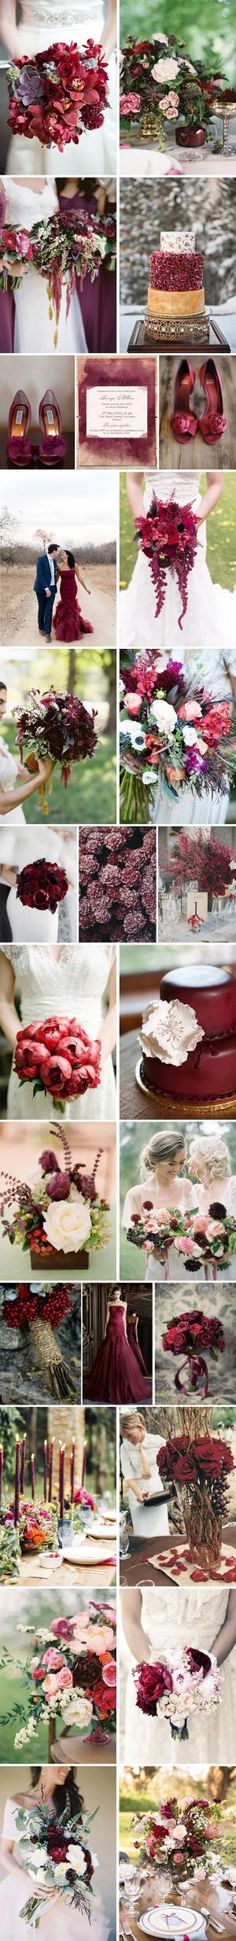 pantone color of 2015 marsala wedding inspiration by alhely